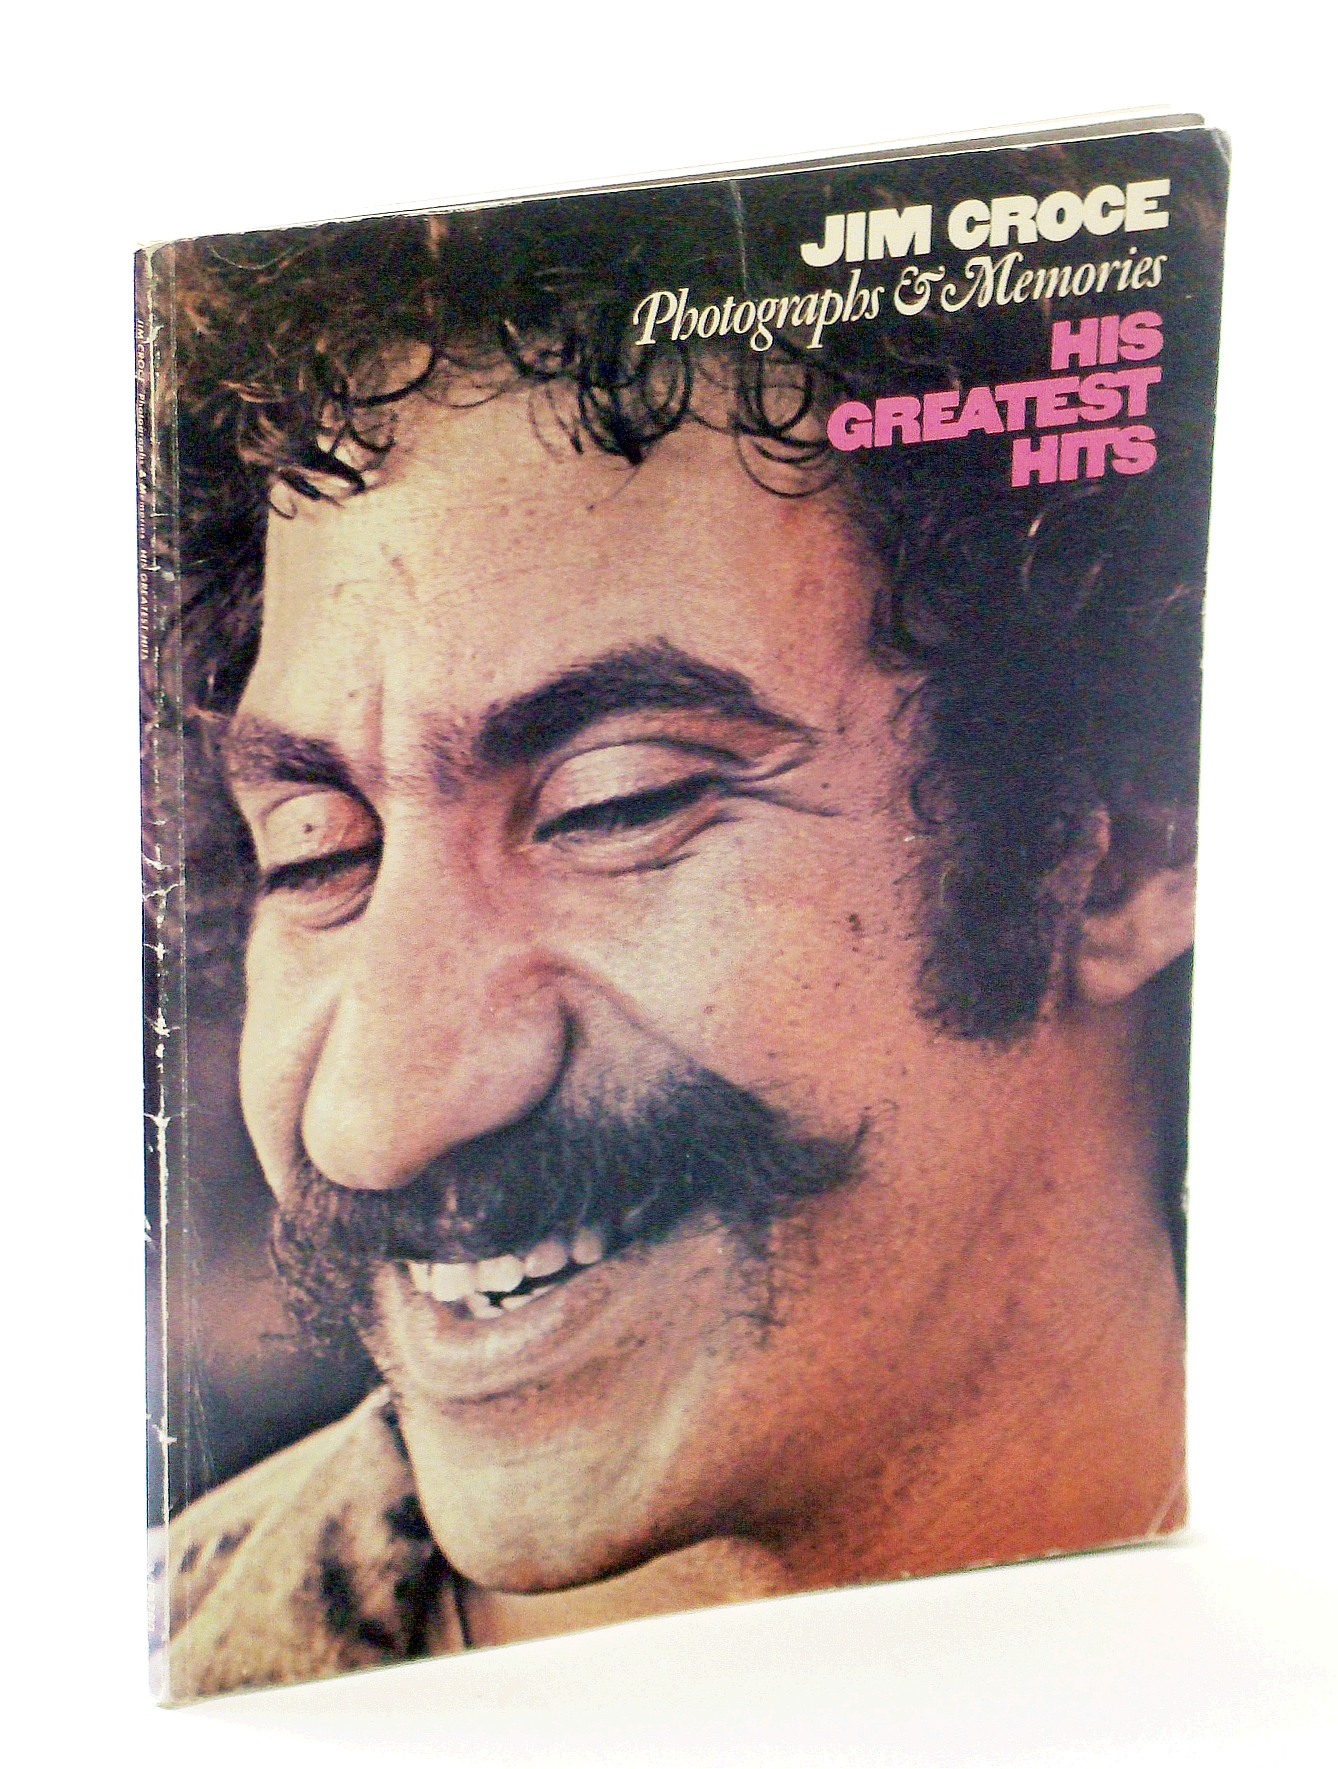 Image for Jim Croce : Photographs And Memories : His Greatest Hits [Songbook] (His Greatest Hits)